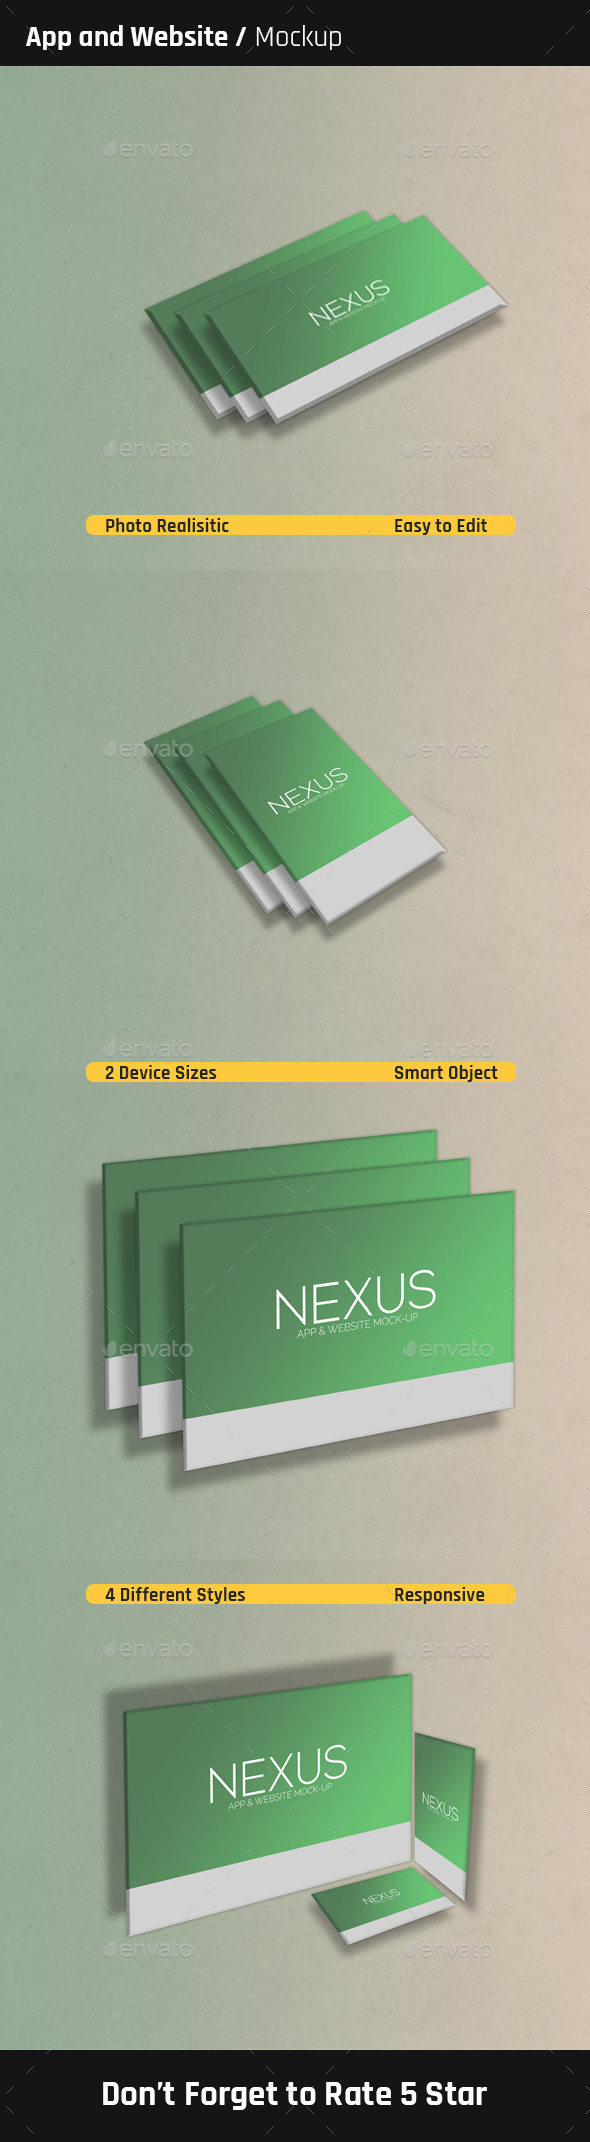 Perspective App and Website Mock-Ups - Miscellaneous Displays